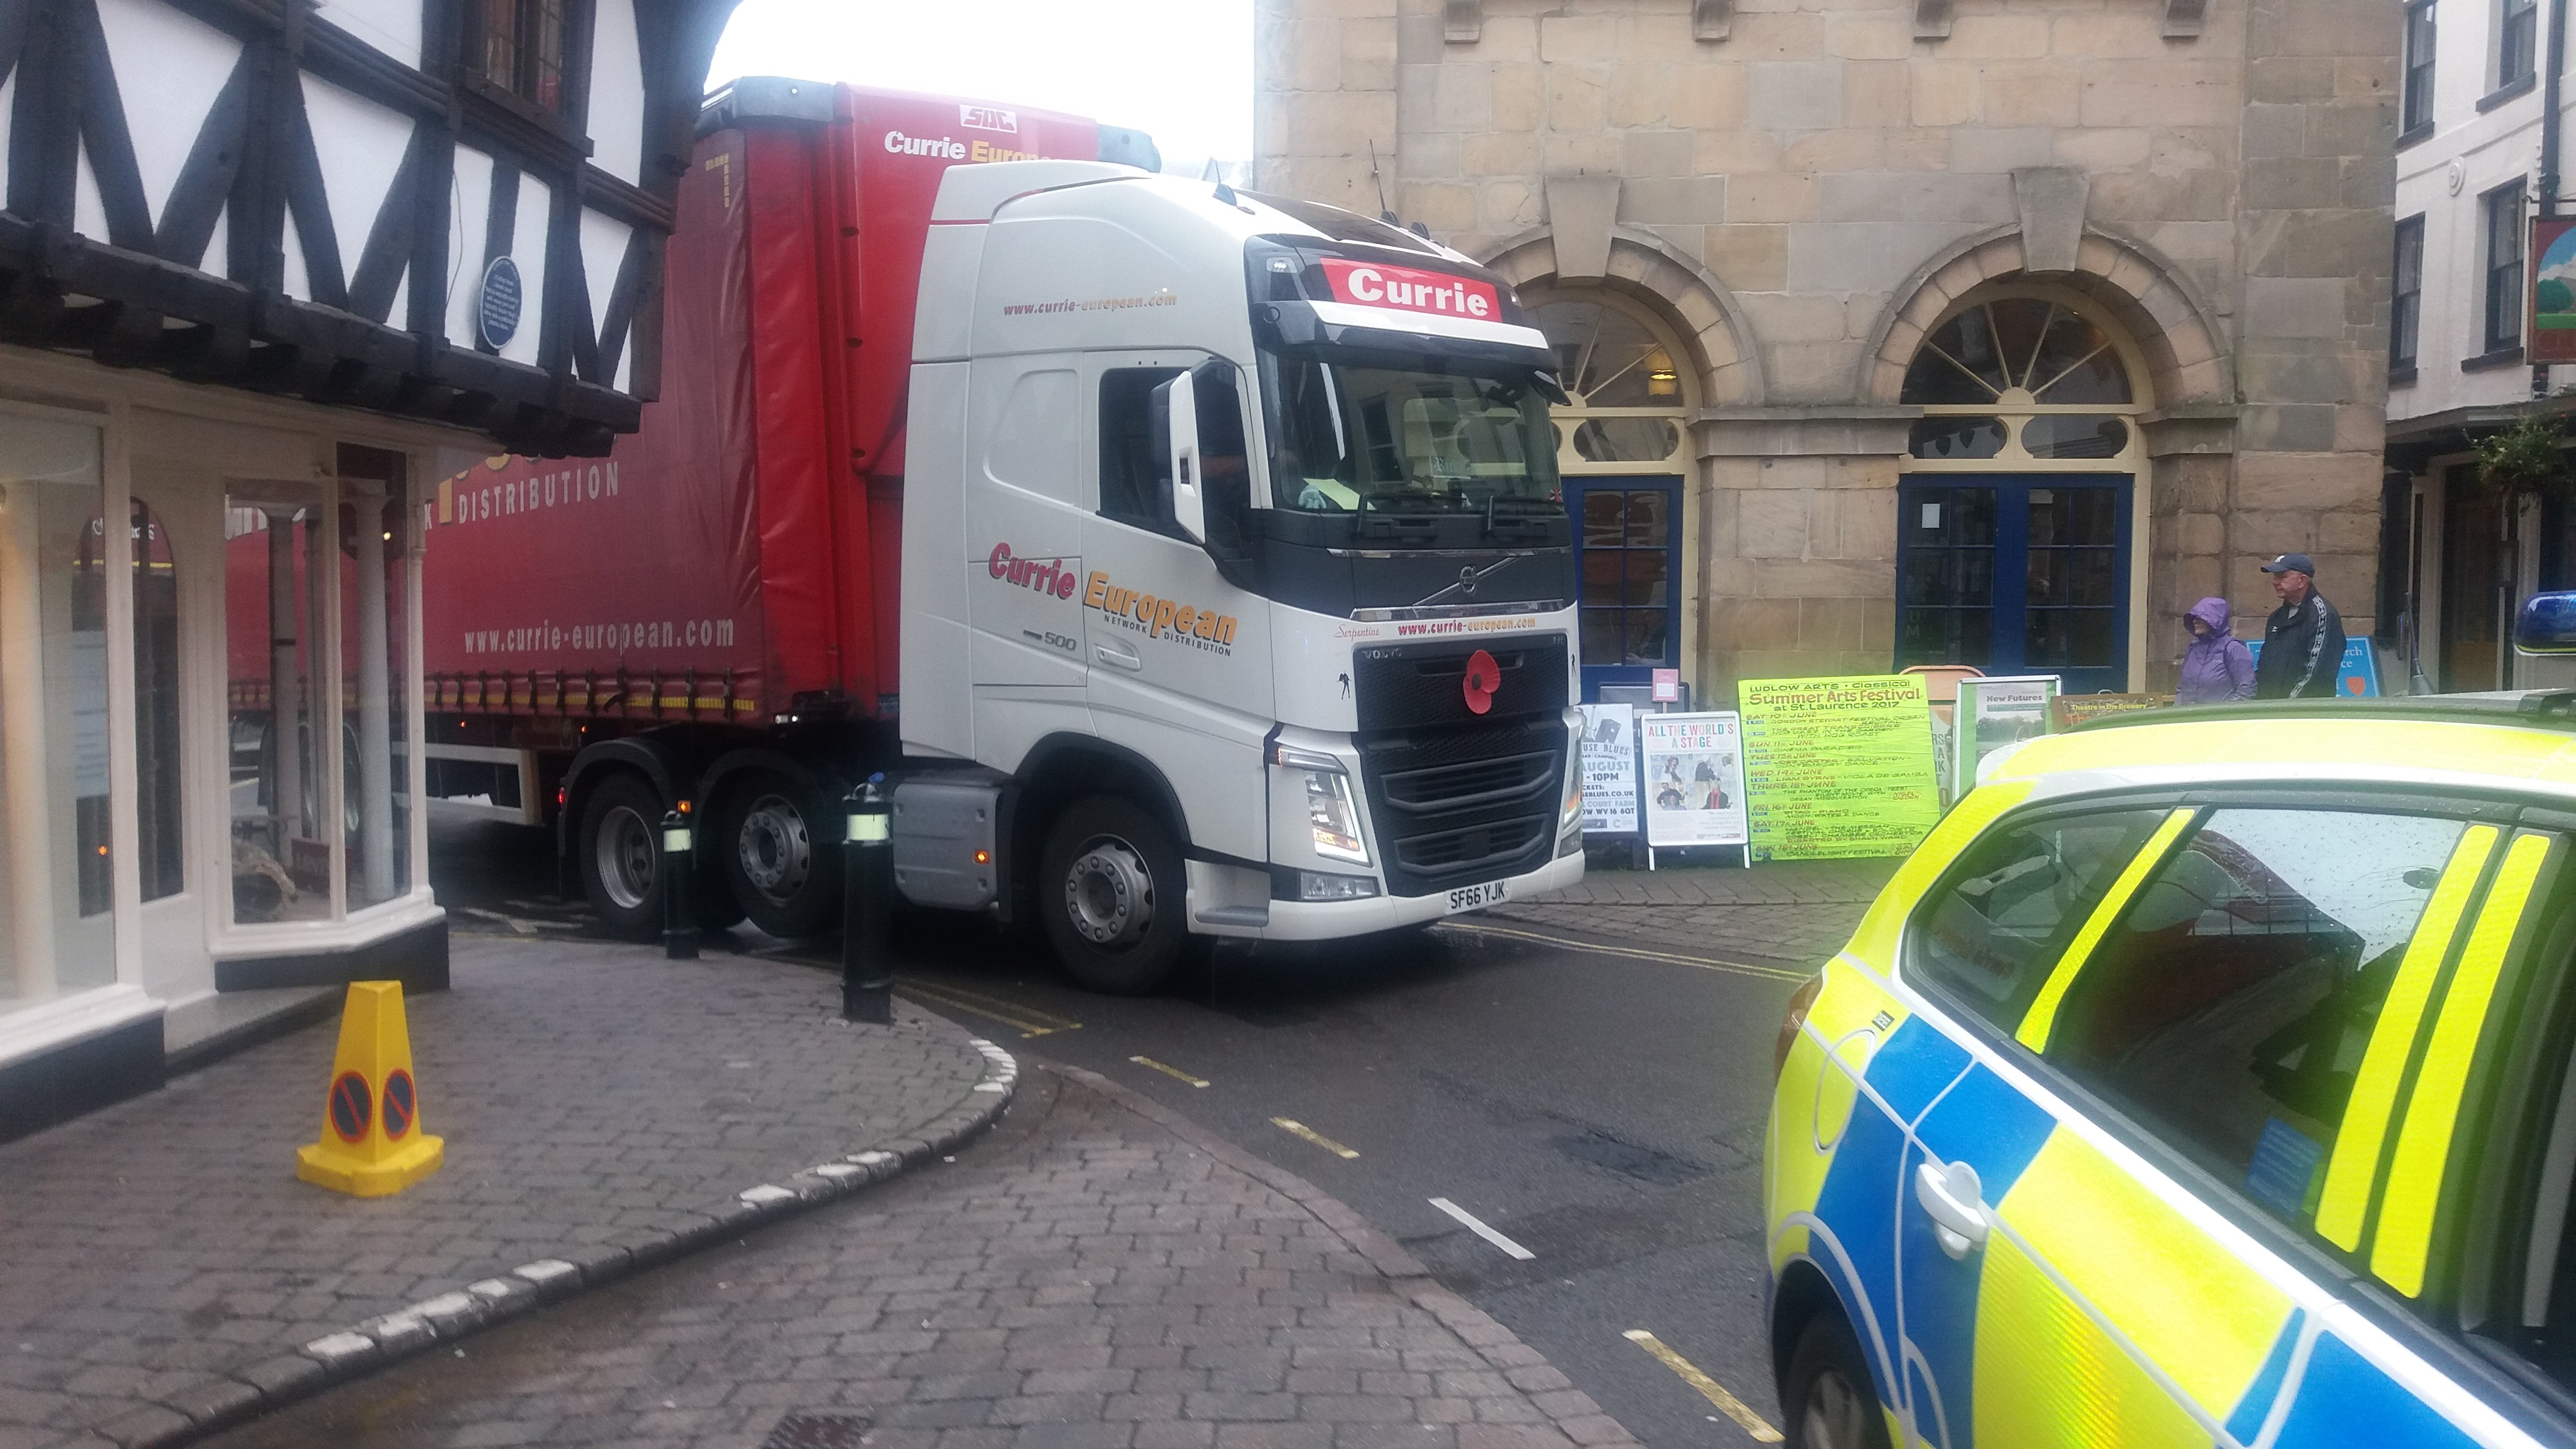 Ludlow centre was closed today by stuck coach and HGV after badly planned roadworks